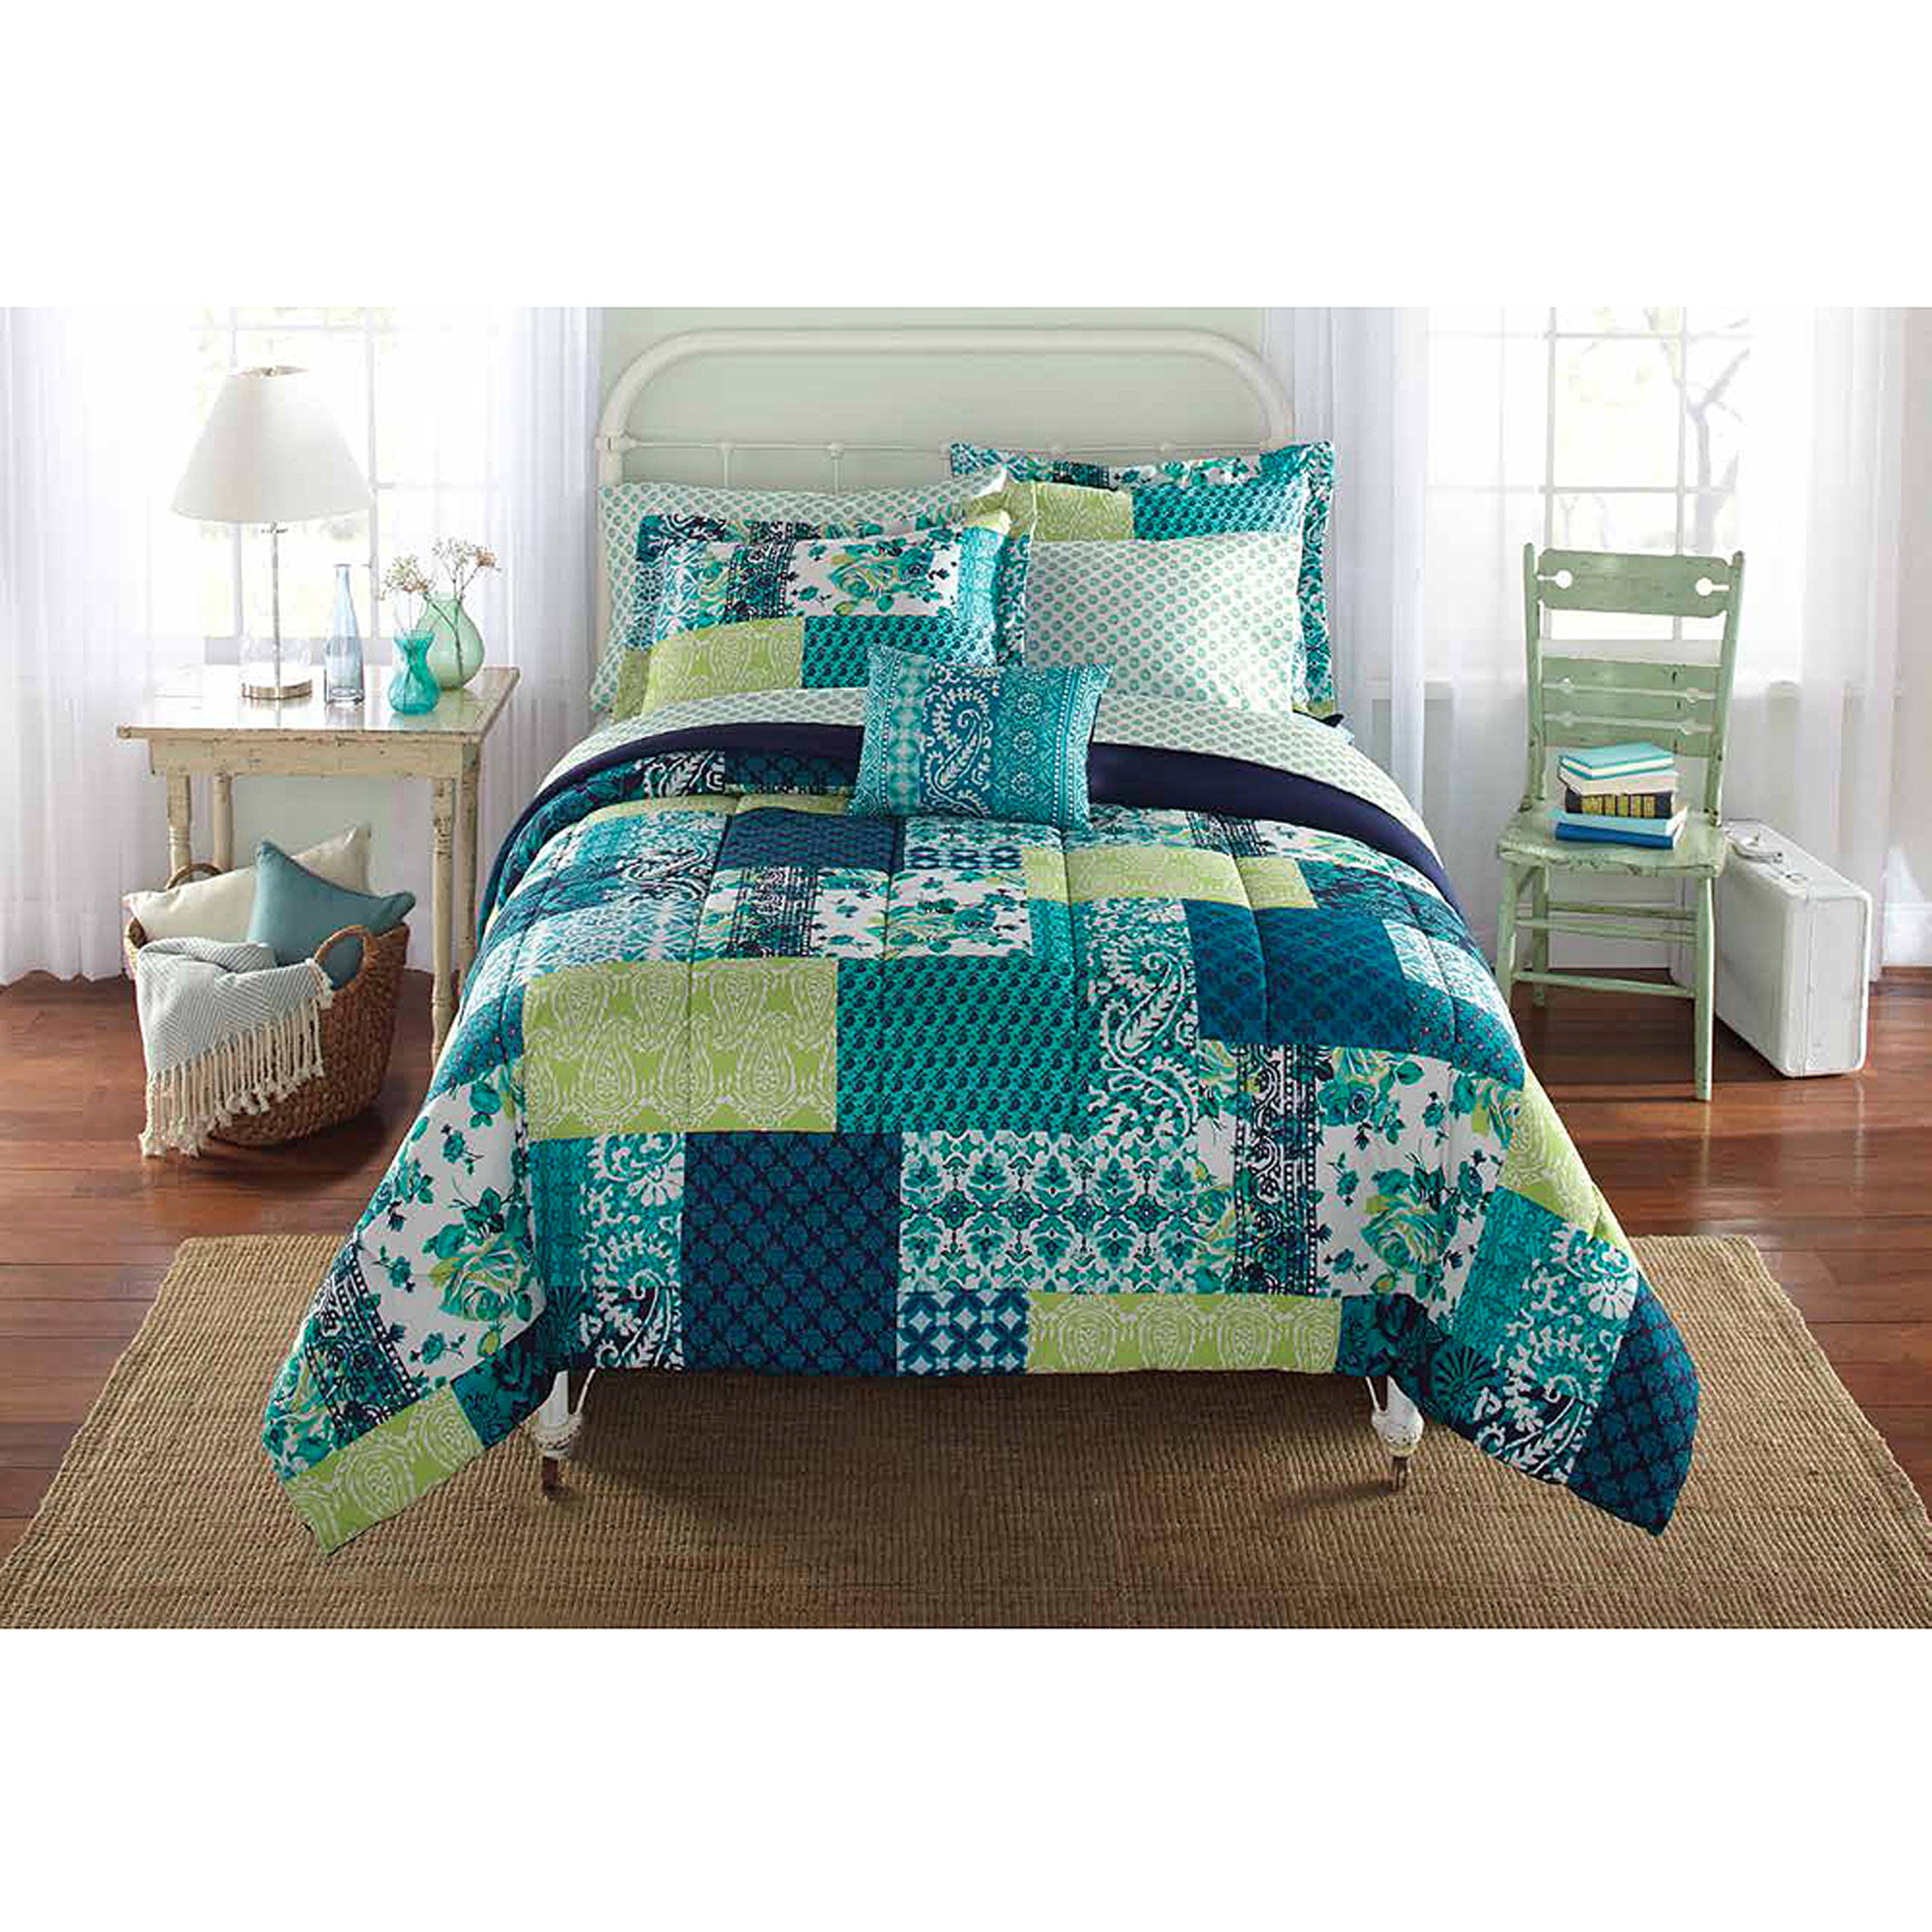 mainstays bed-in-a-bag bedding comforter set, teal patch - walmart